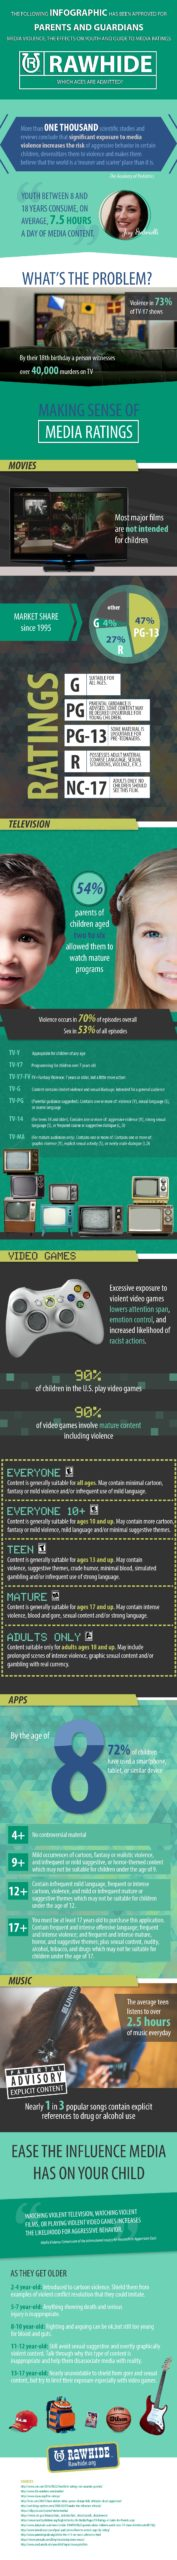 media violence infographic